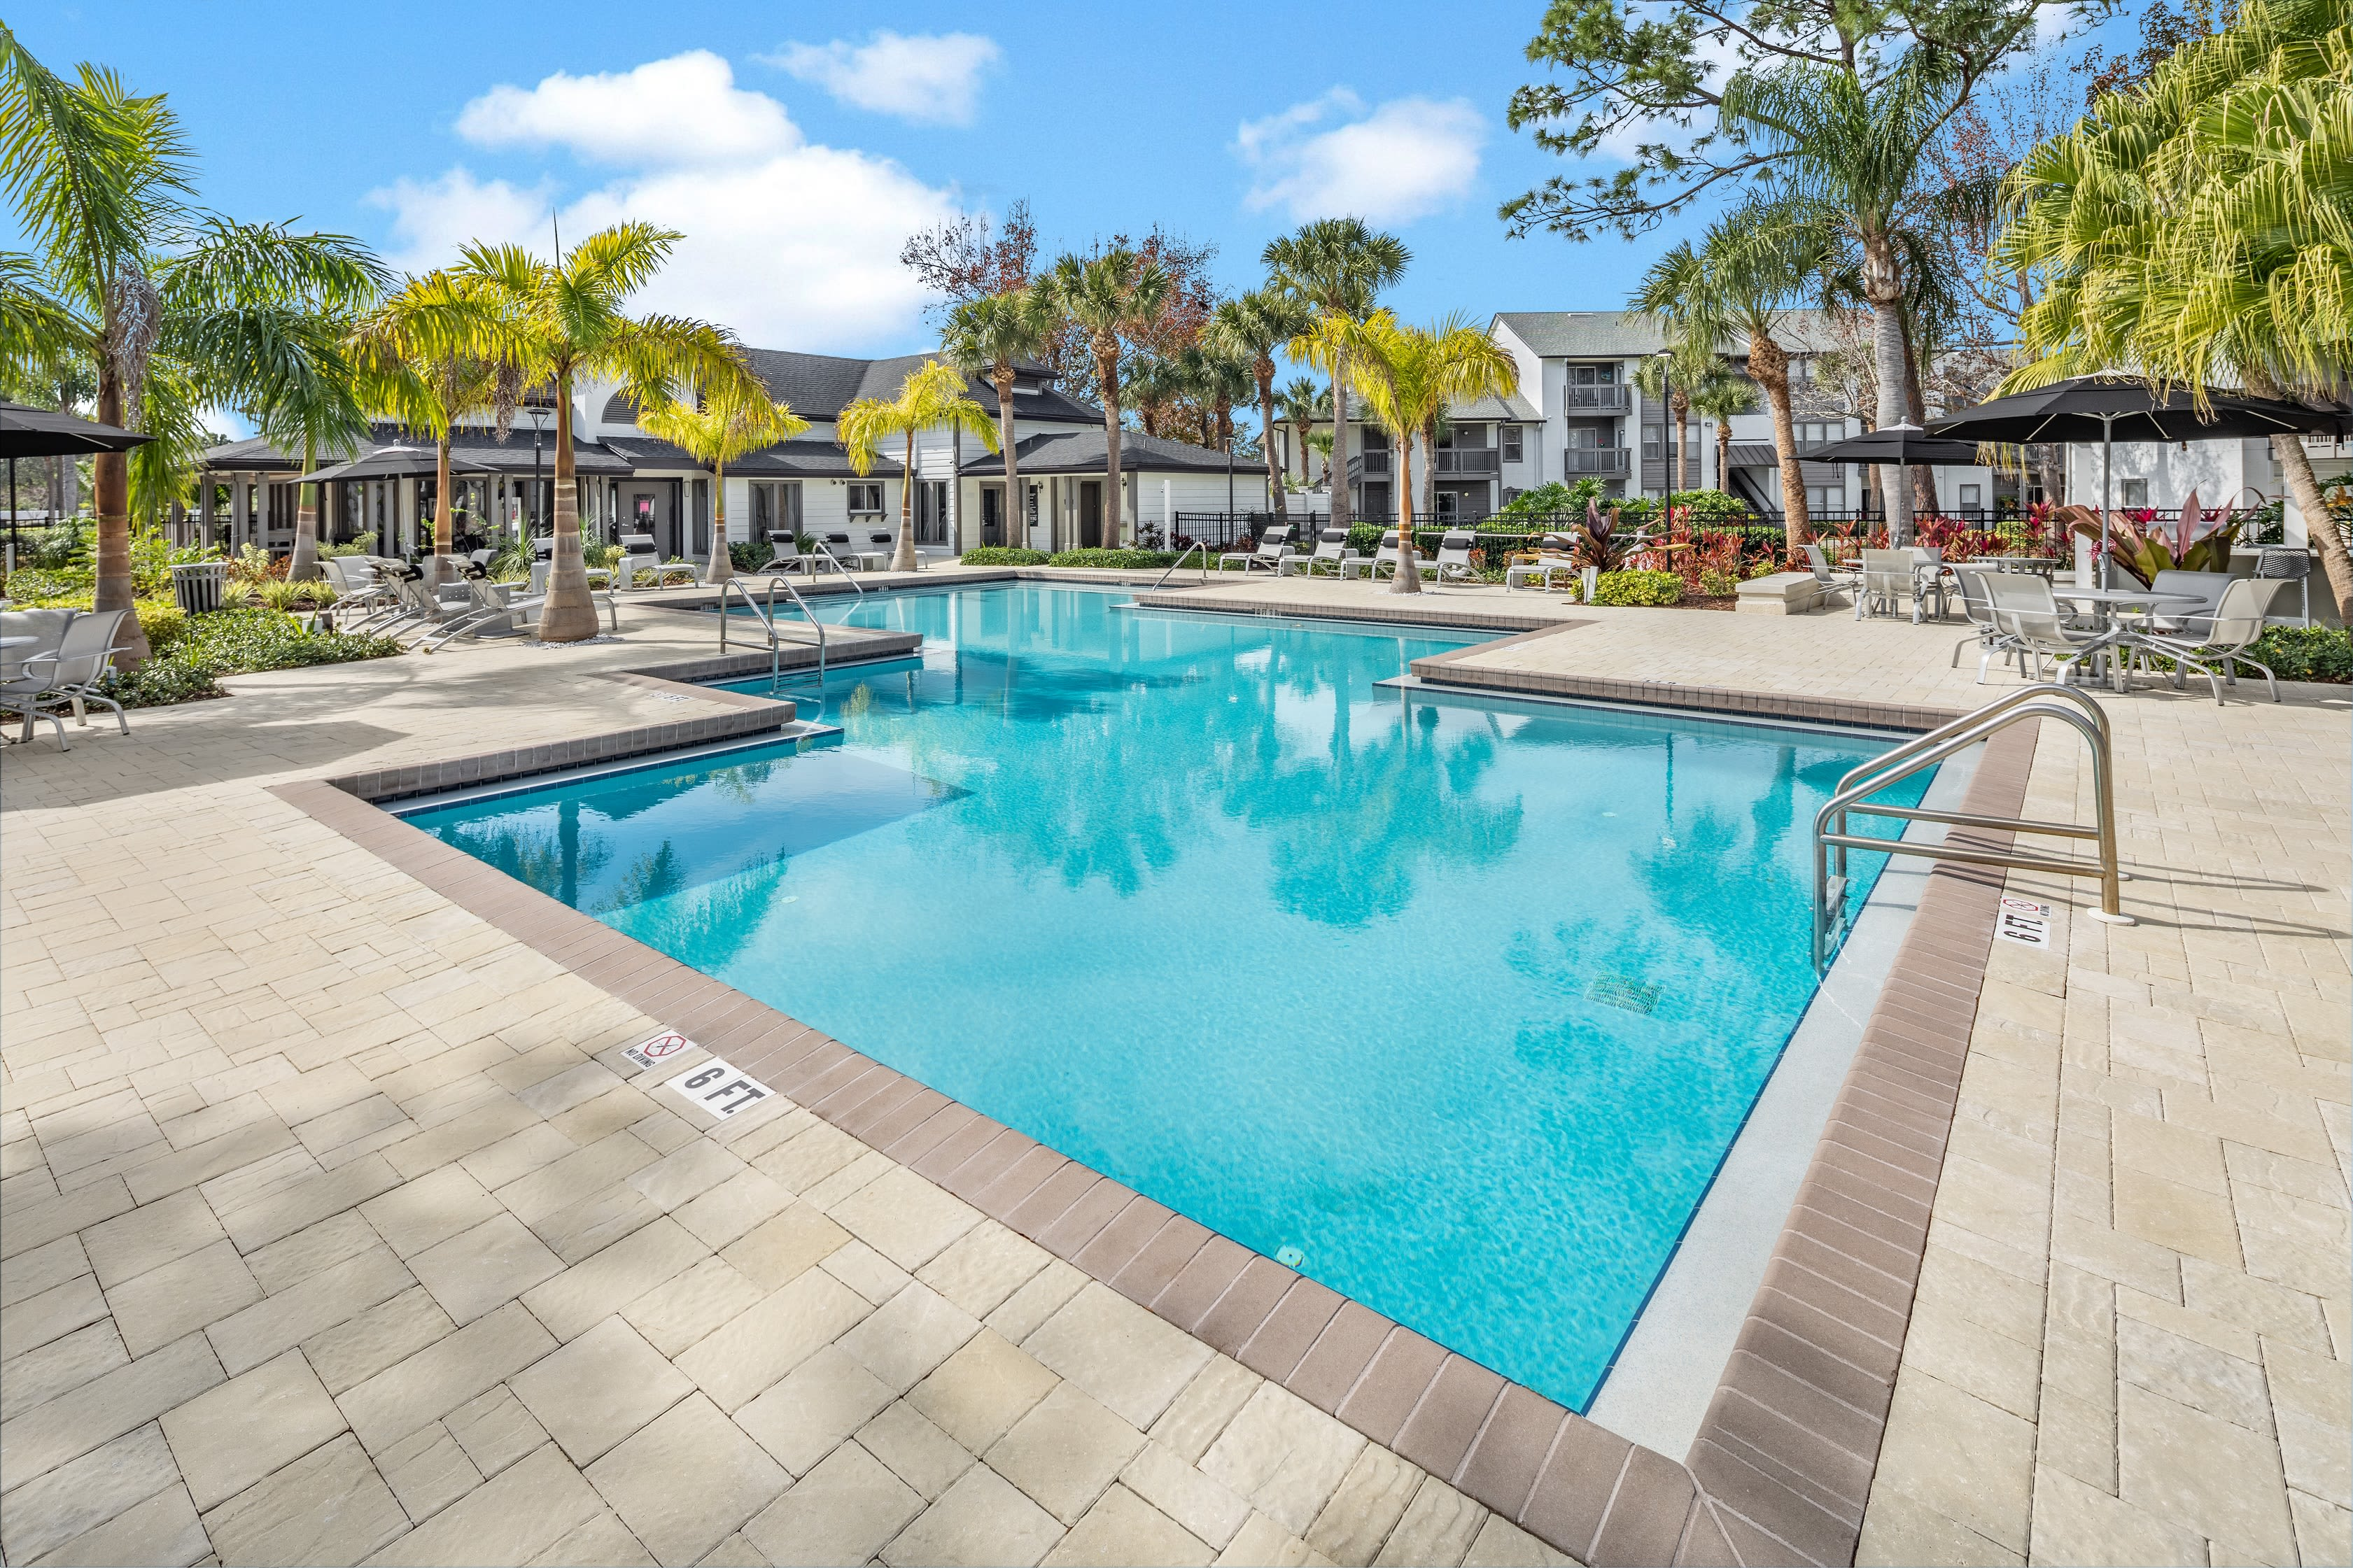 Renovated pool at The Braxton in Palm Bay, FL